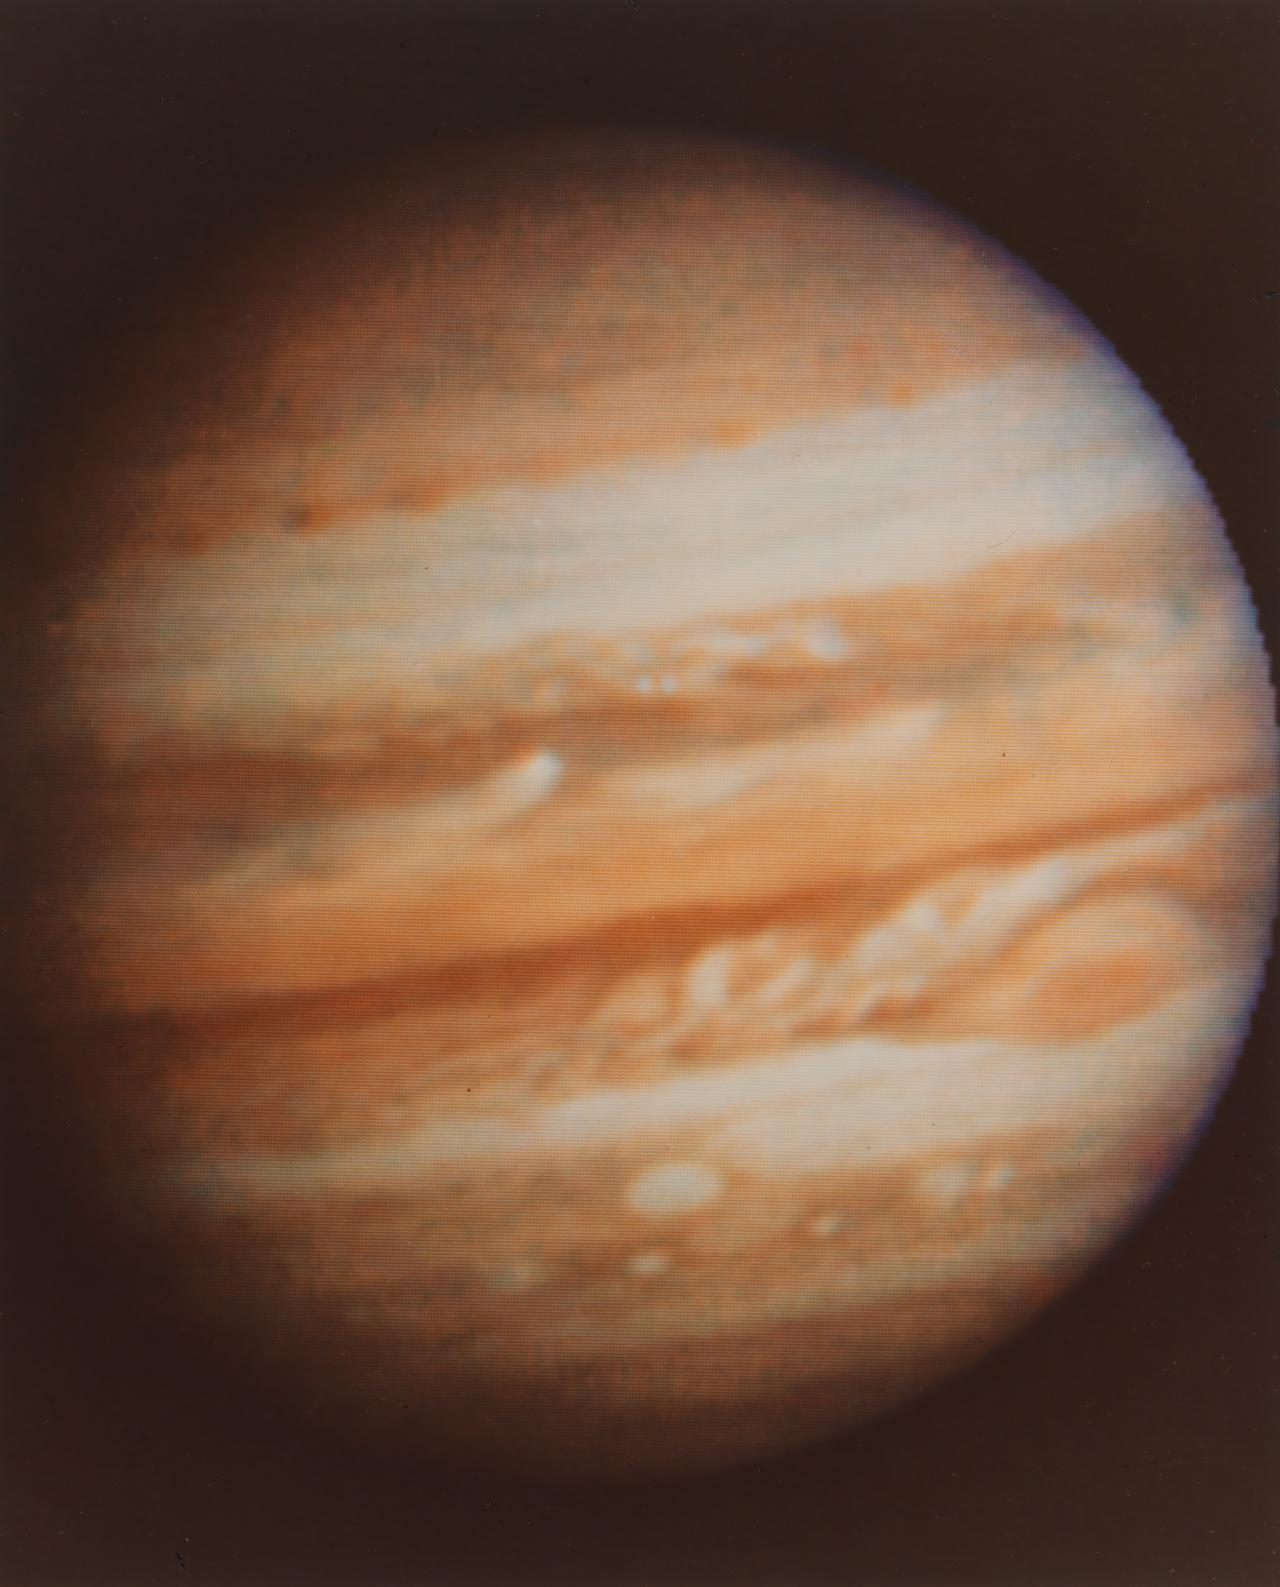 Voyager 1 image of Jupiter, taken 10 December 1978, showing Great Red Spot and turbulent atmosphere